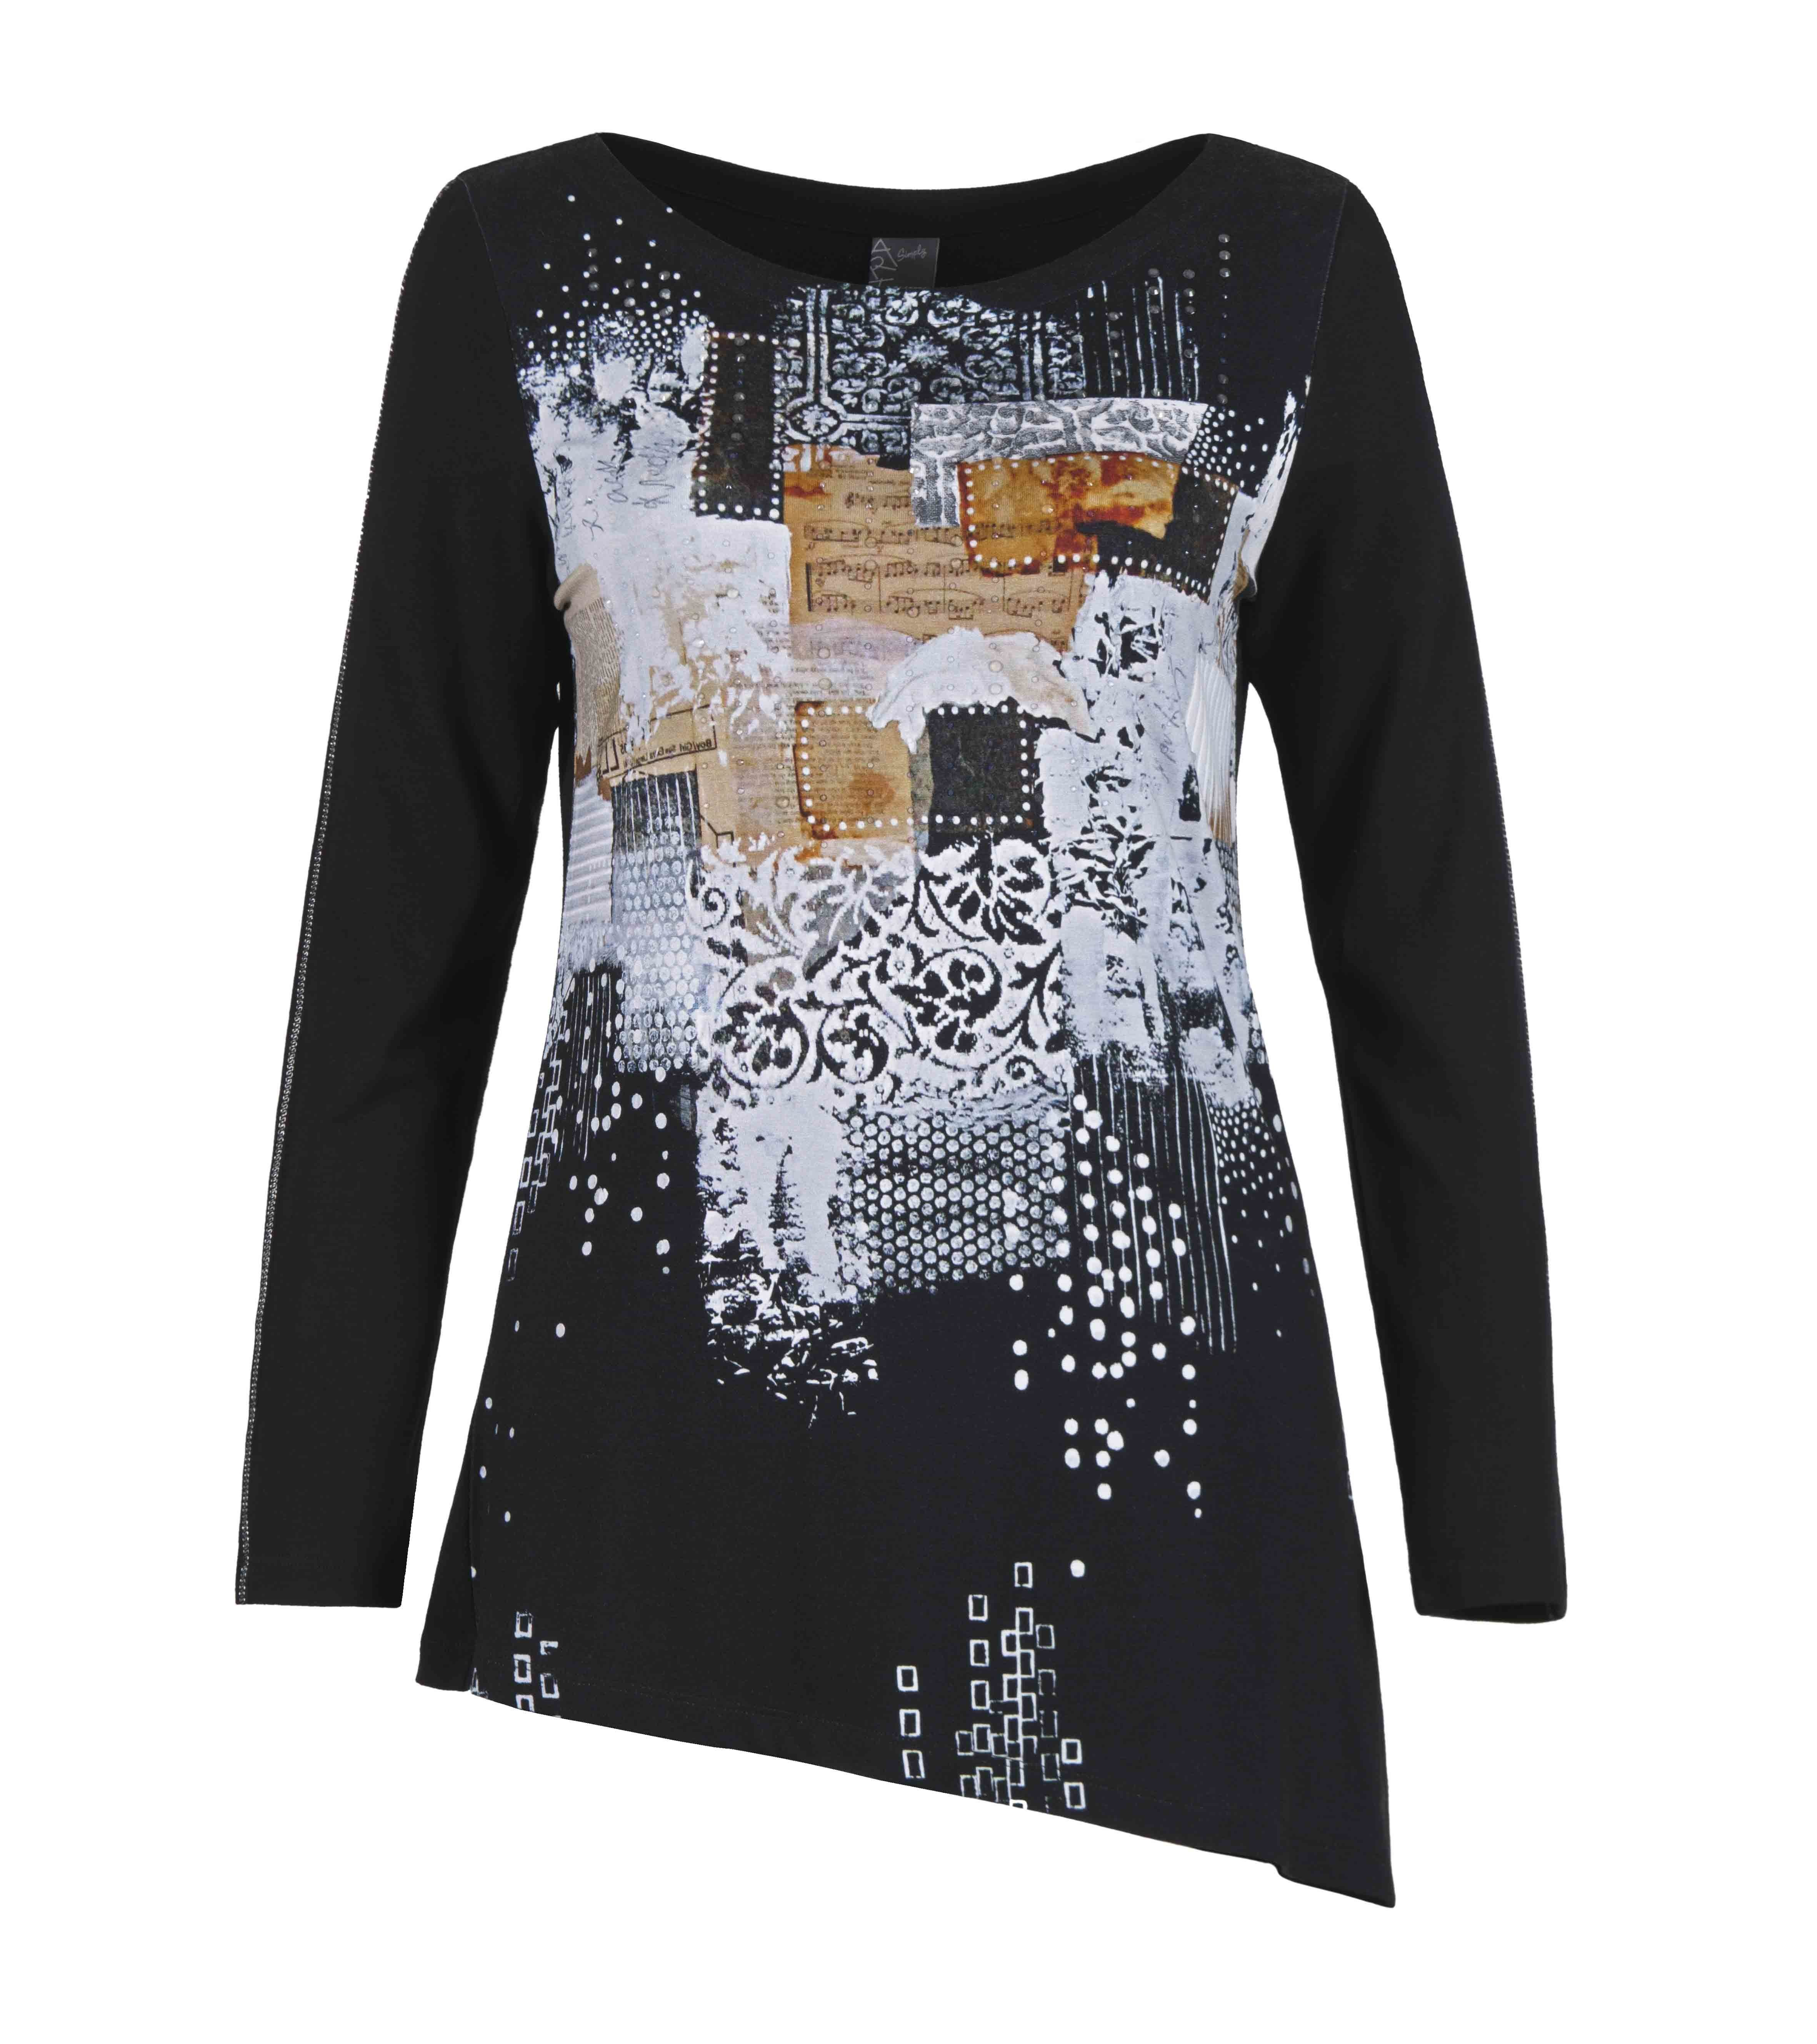 Simply Art Dolcezza: Explosion of Crystals Asymmetrical Abstract Art Tunic